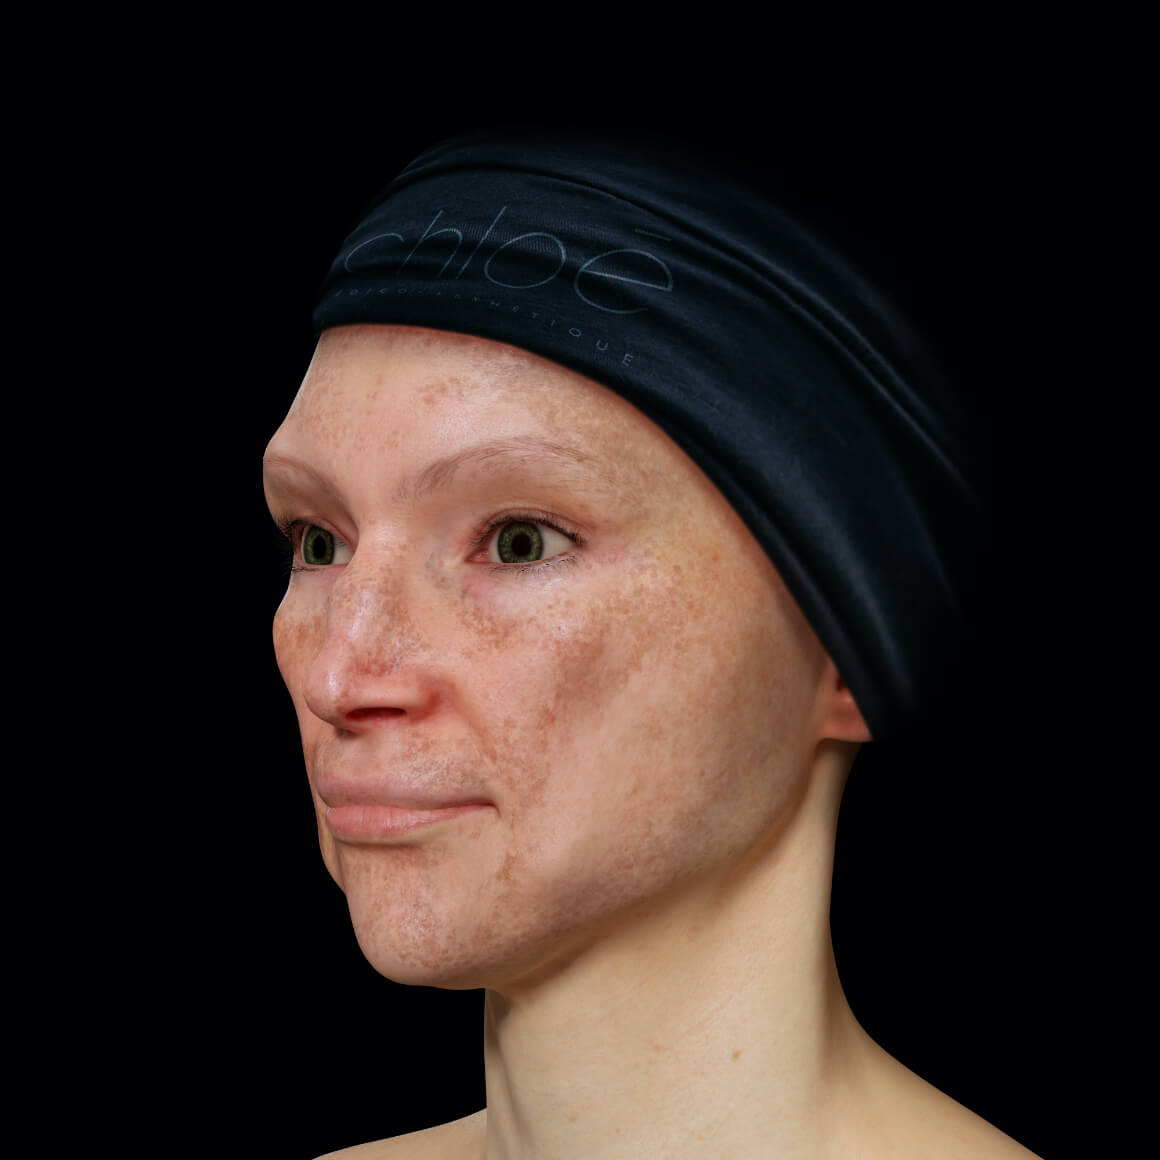 Angled Clinique Chloé female patient with melasma on her face